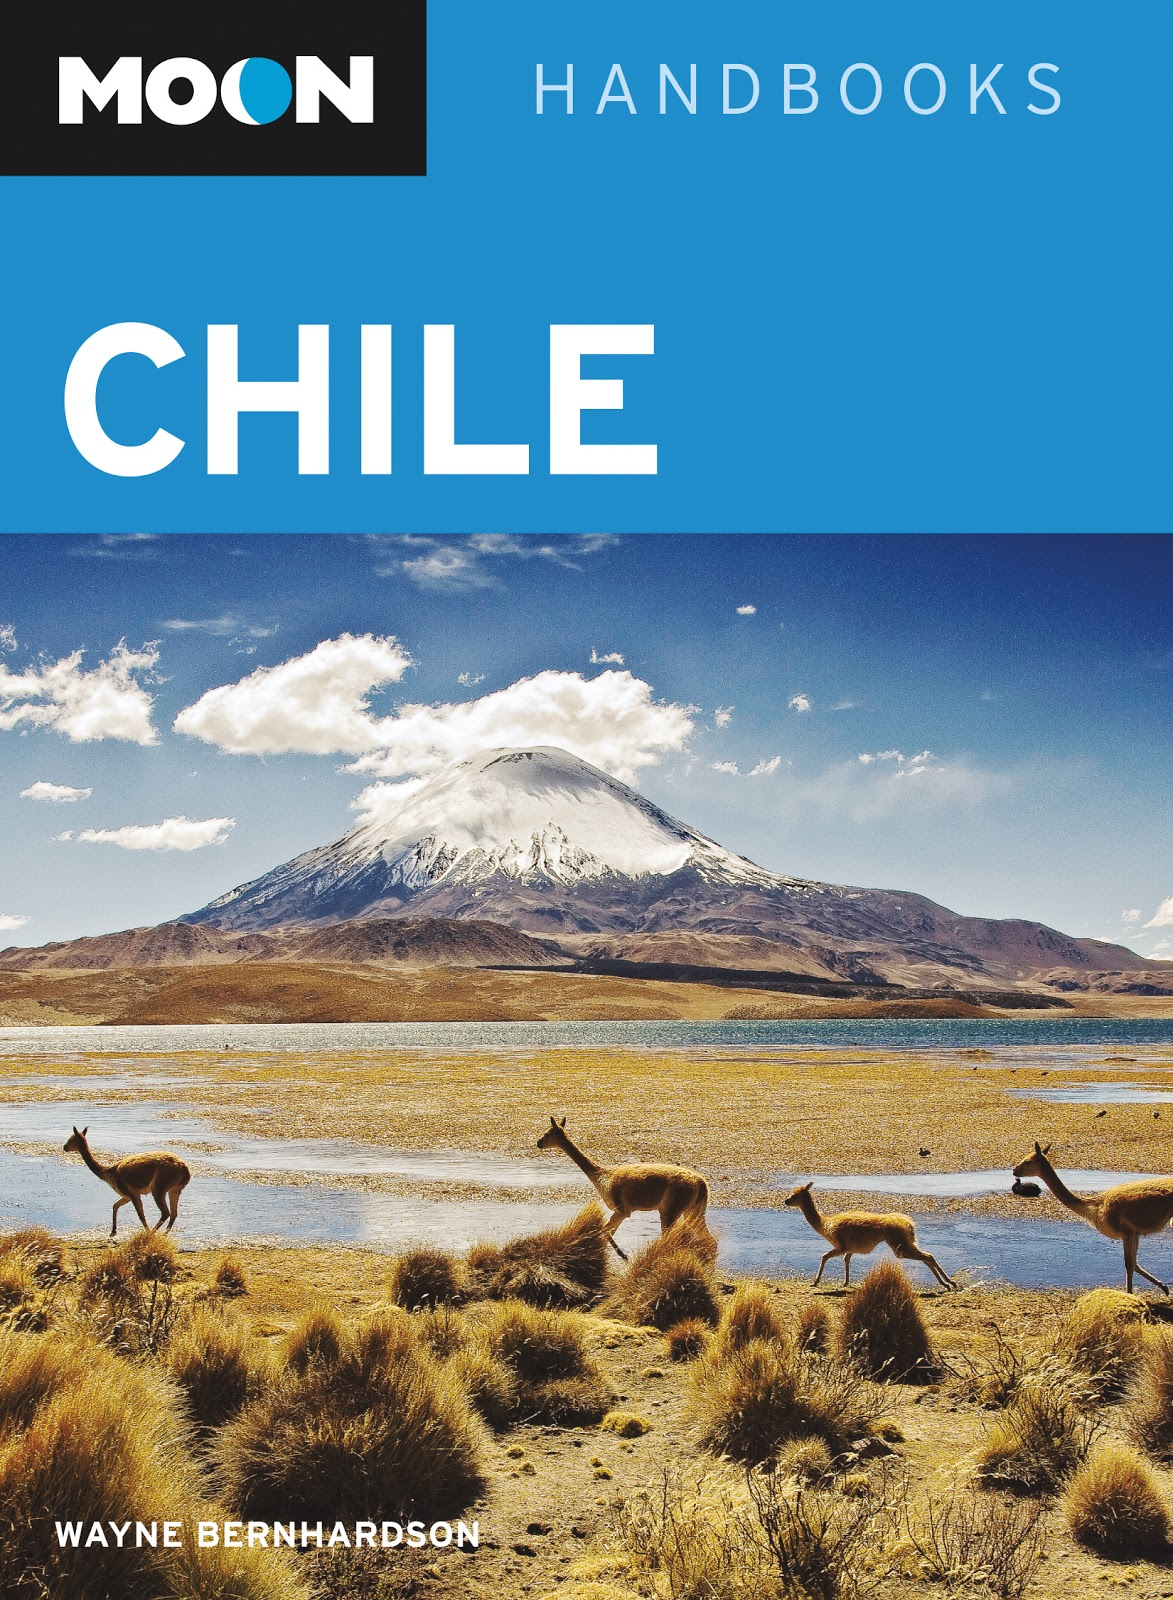 Southern Cone Travel: Against The Wind? Chile's Patagonian